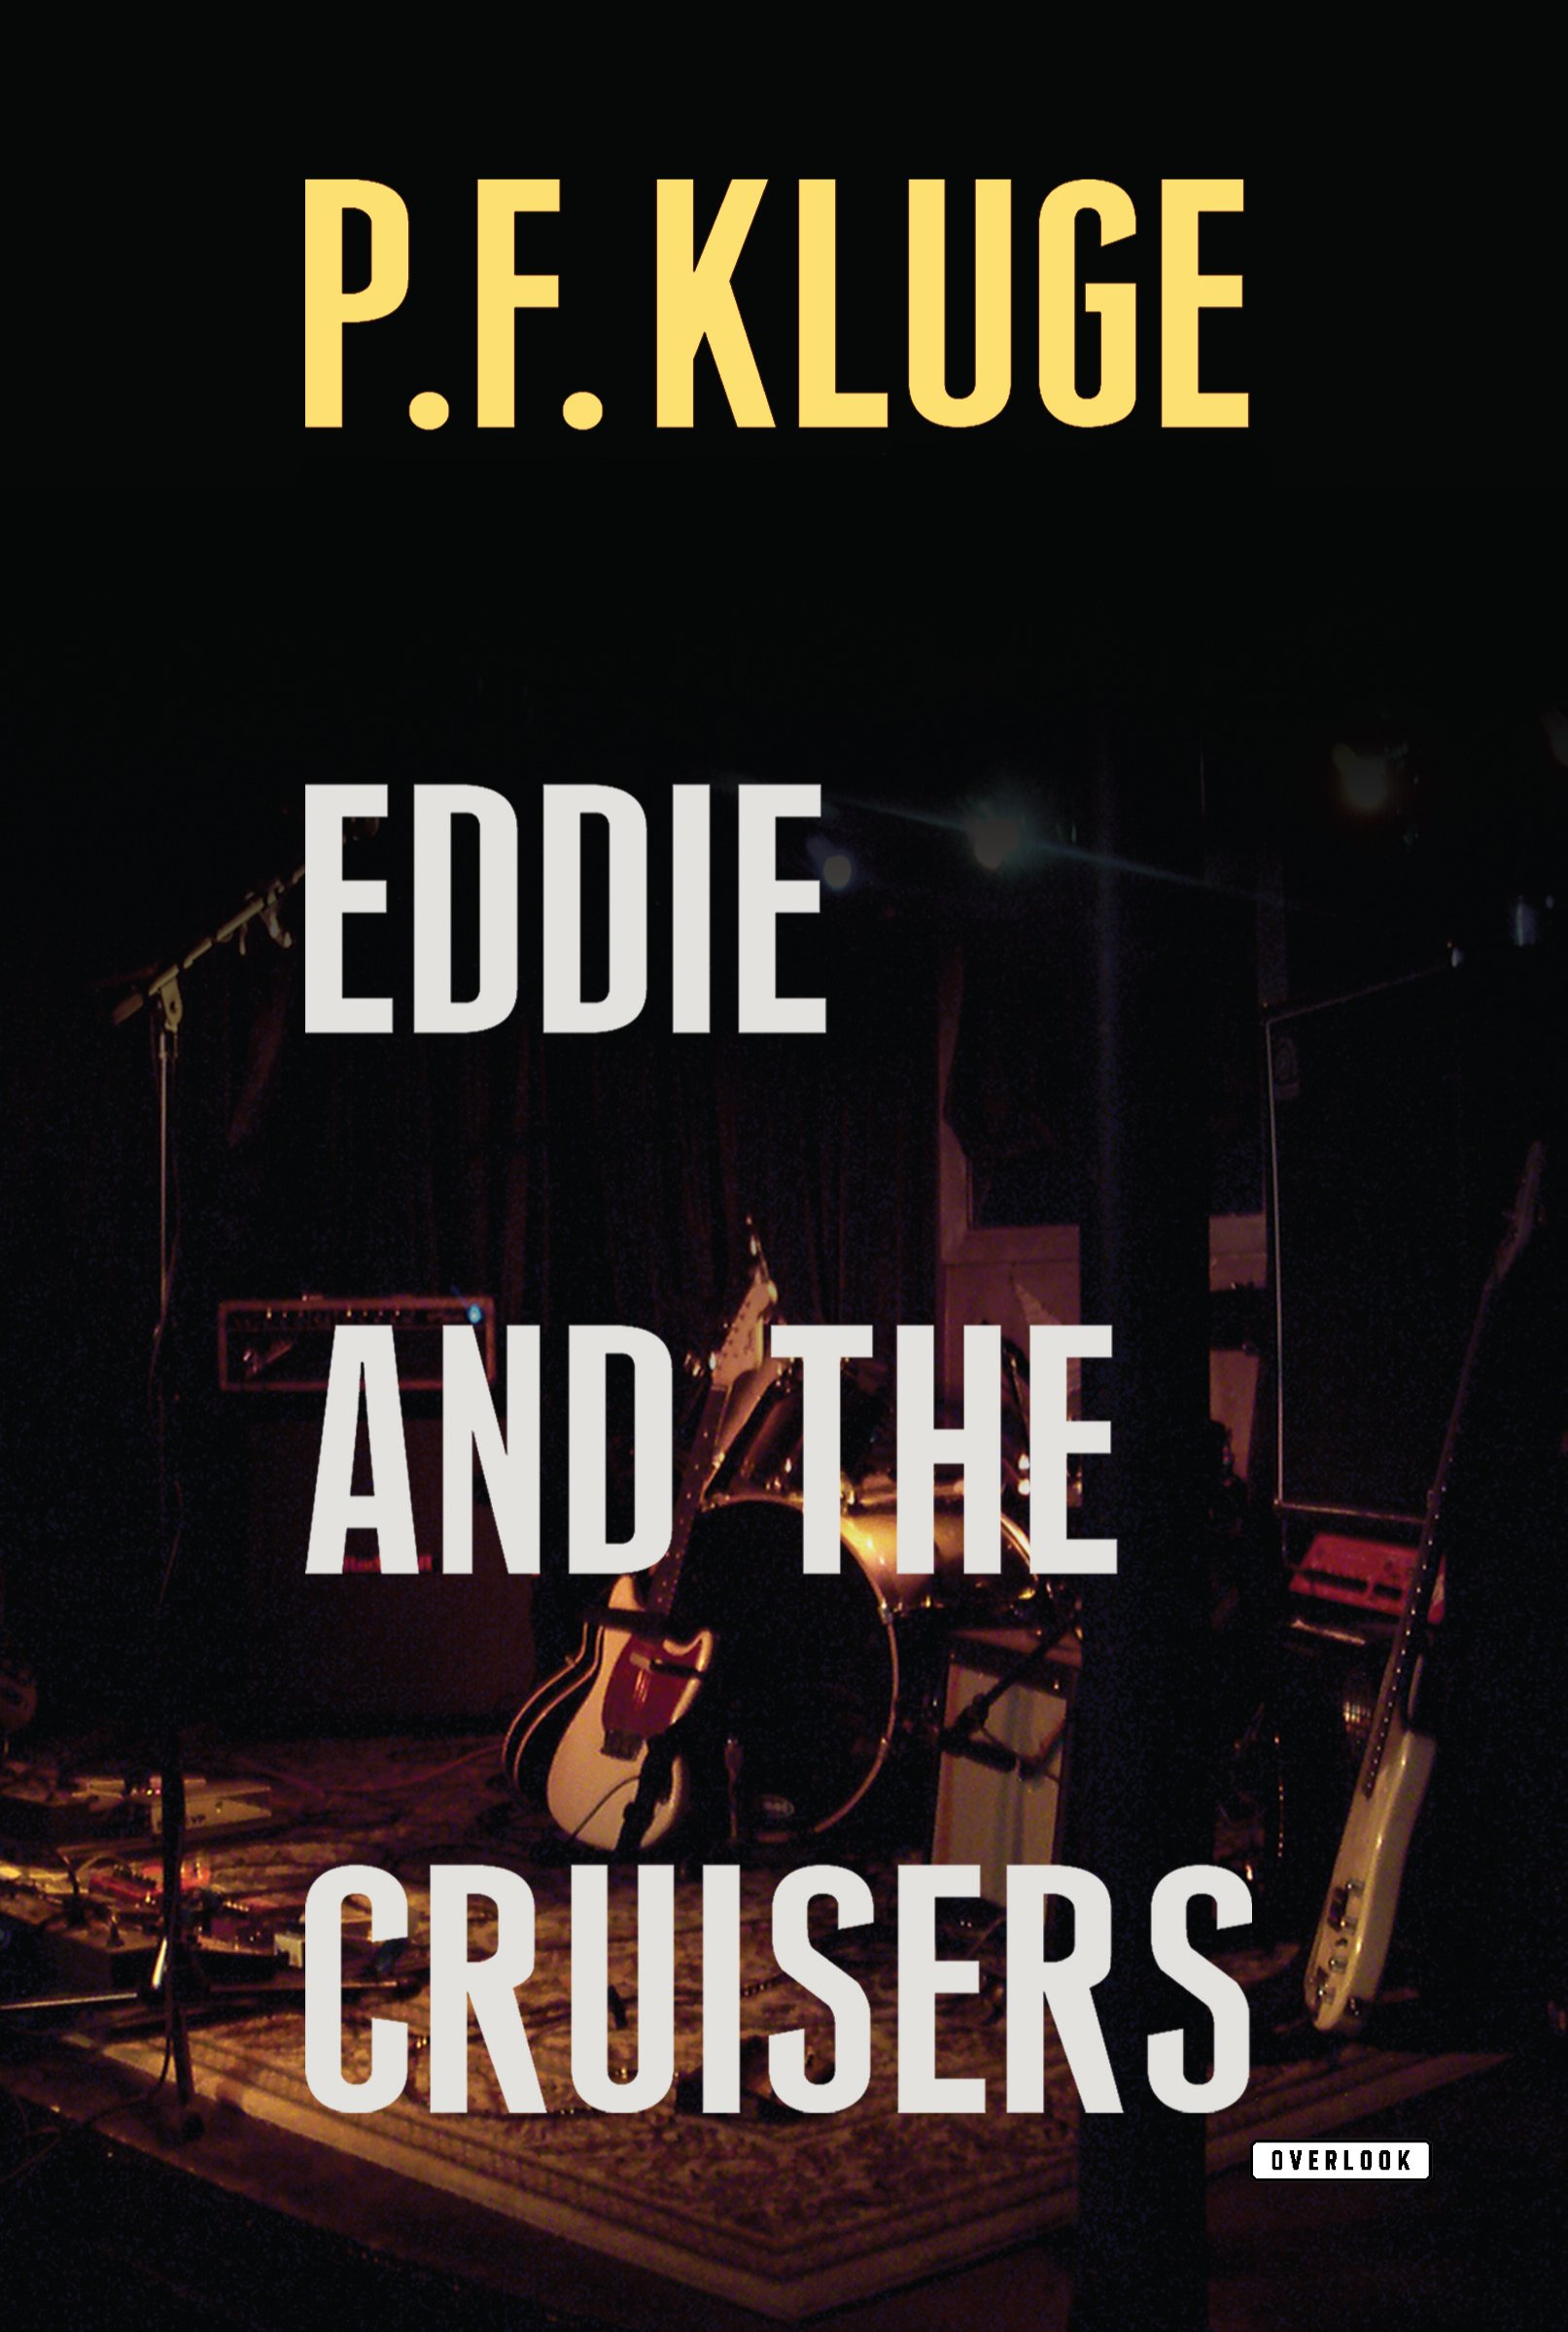 eddie and the cruisers soundtrack free download